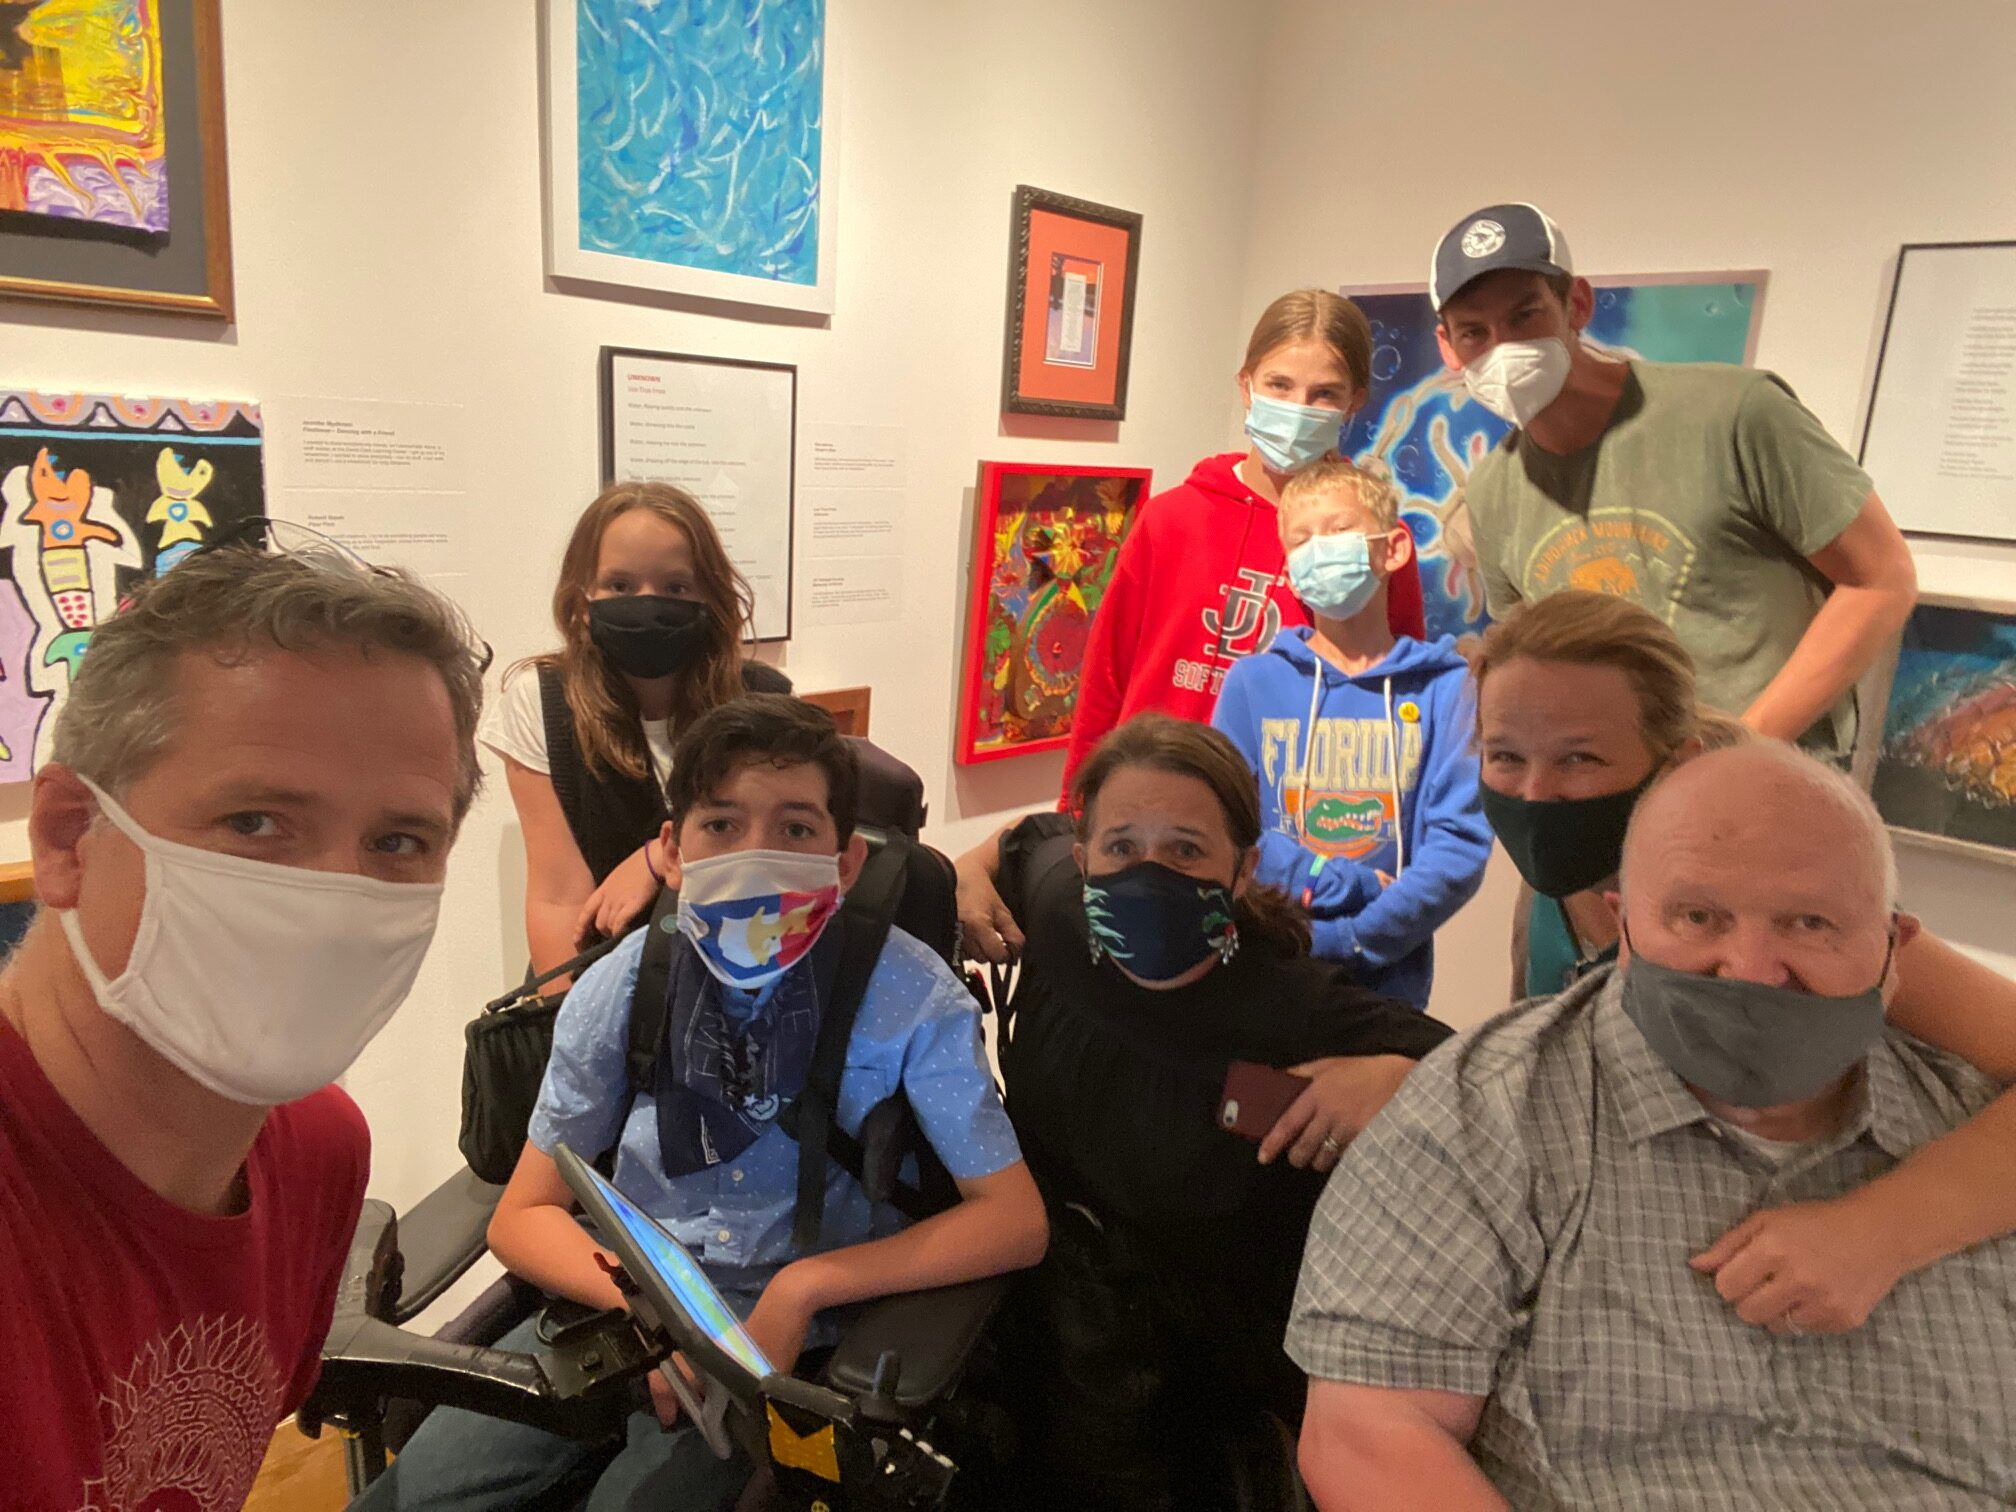 The 2021 UNIQUE Art & Literary Exhibit at the Everson Museum Gets an Extension!